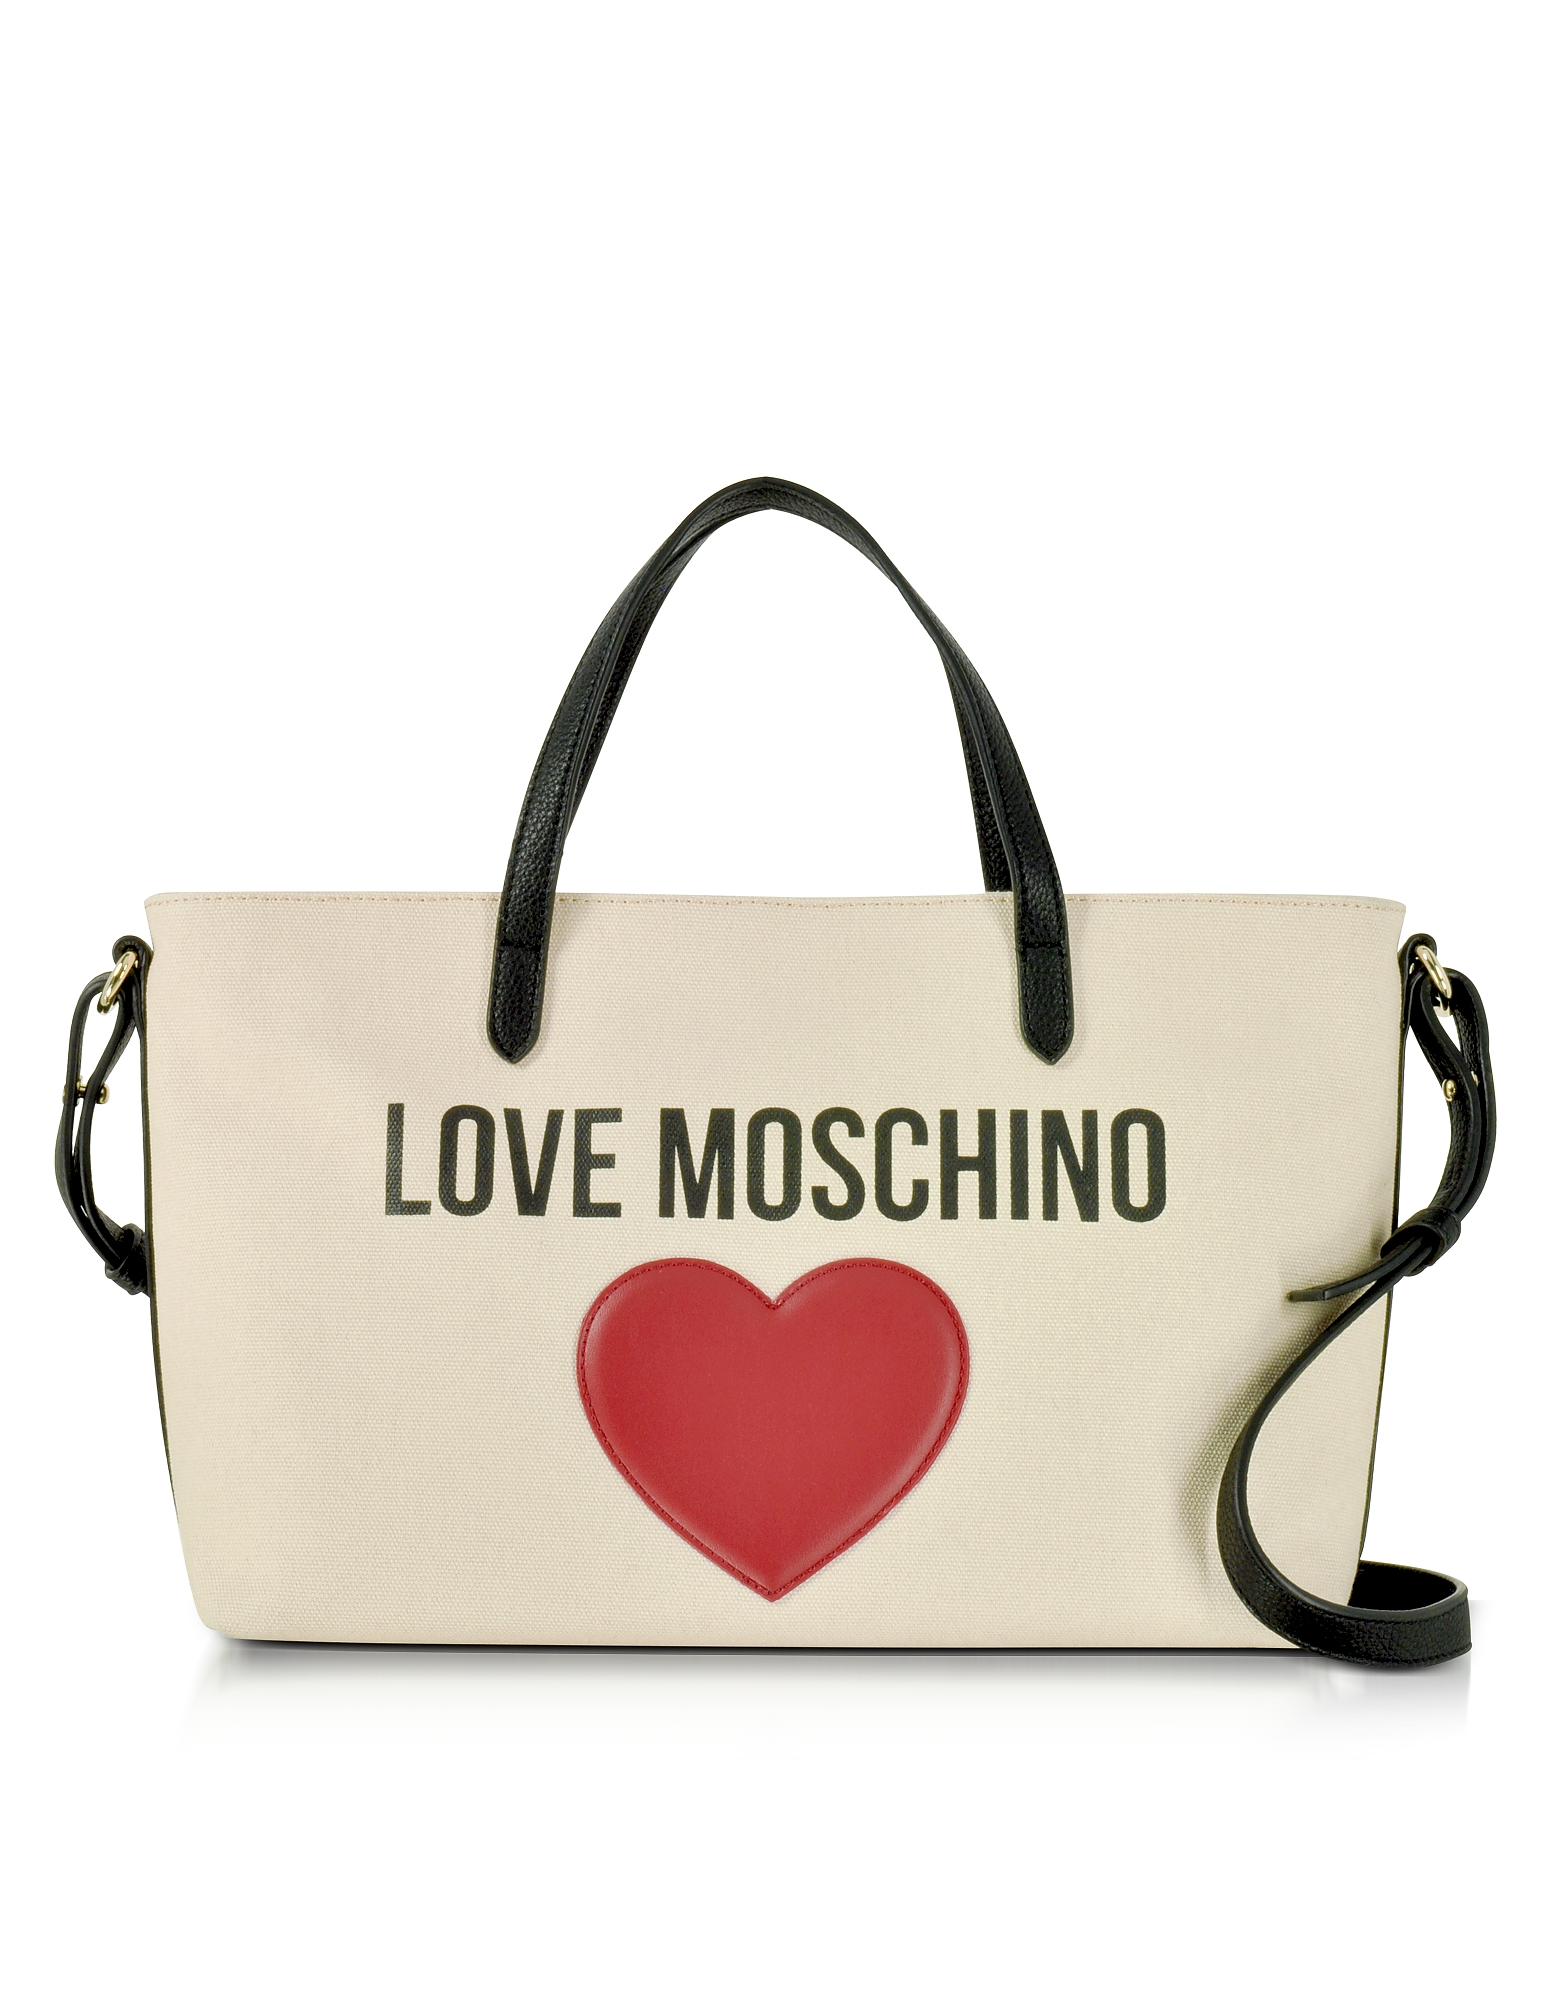 Love Moschino Handbags, Love Moschino & Heart Cotton Tote Bag w/Strap